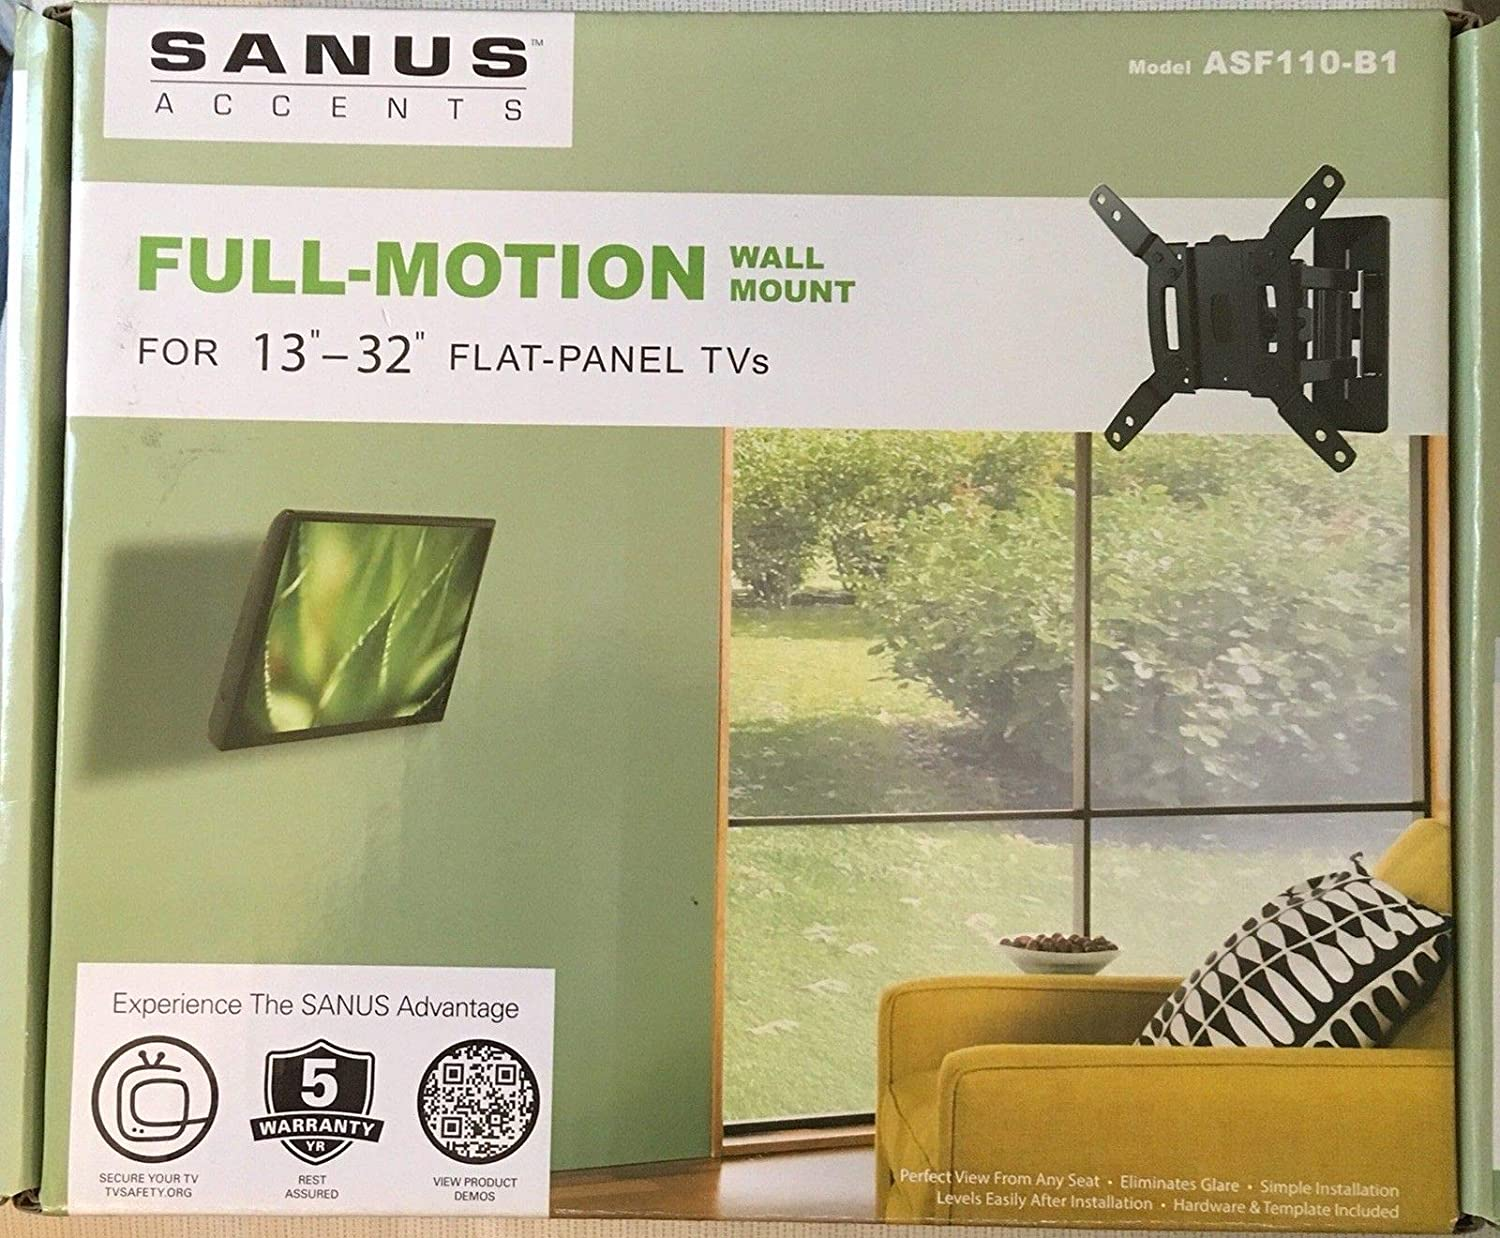 Sanus Accents Full-Motion Wall Mount for 13-32 TVS-ASF110-B1